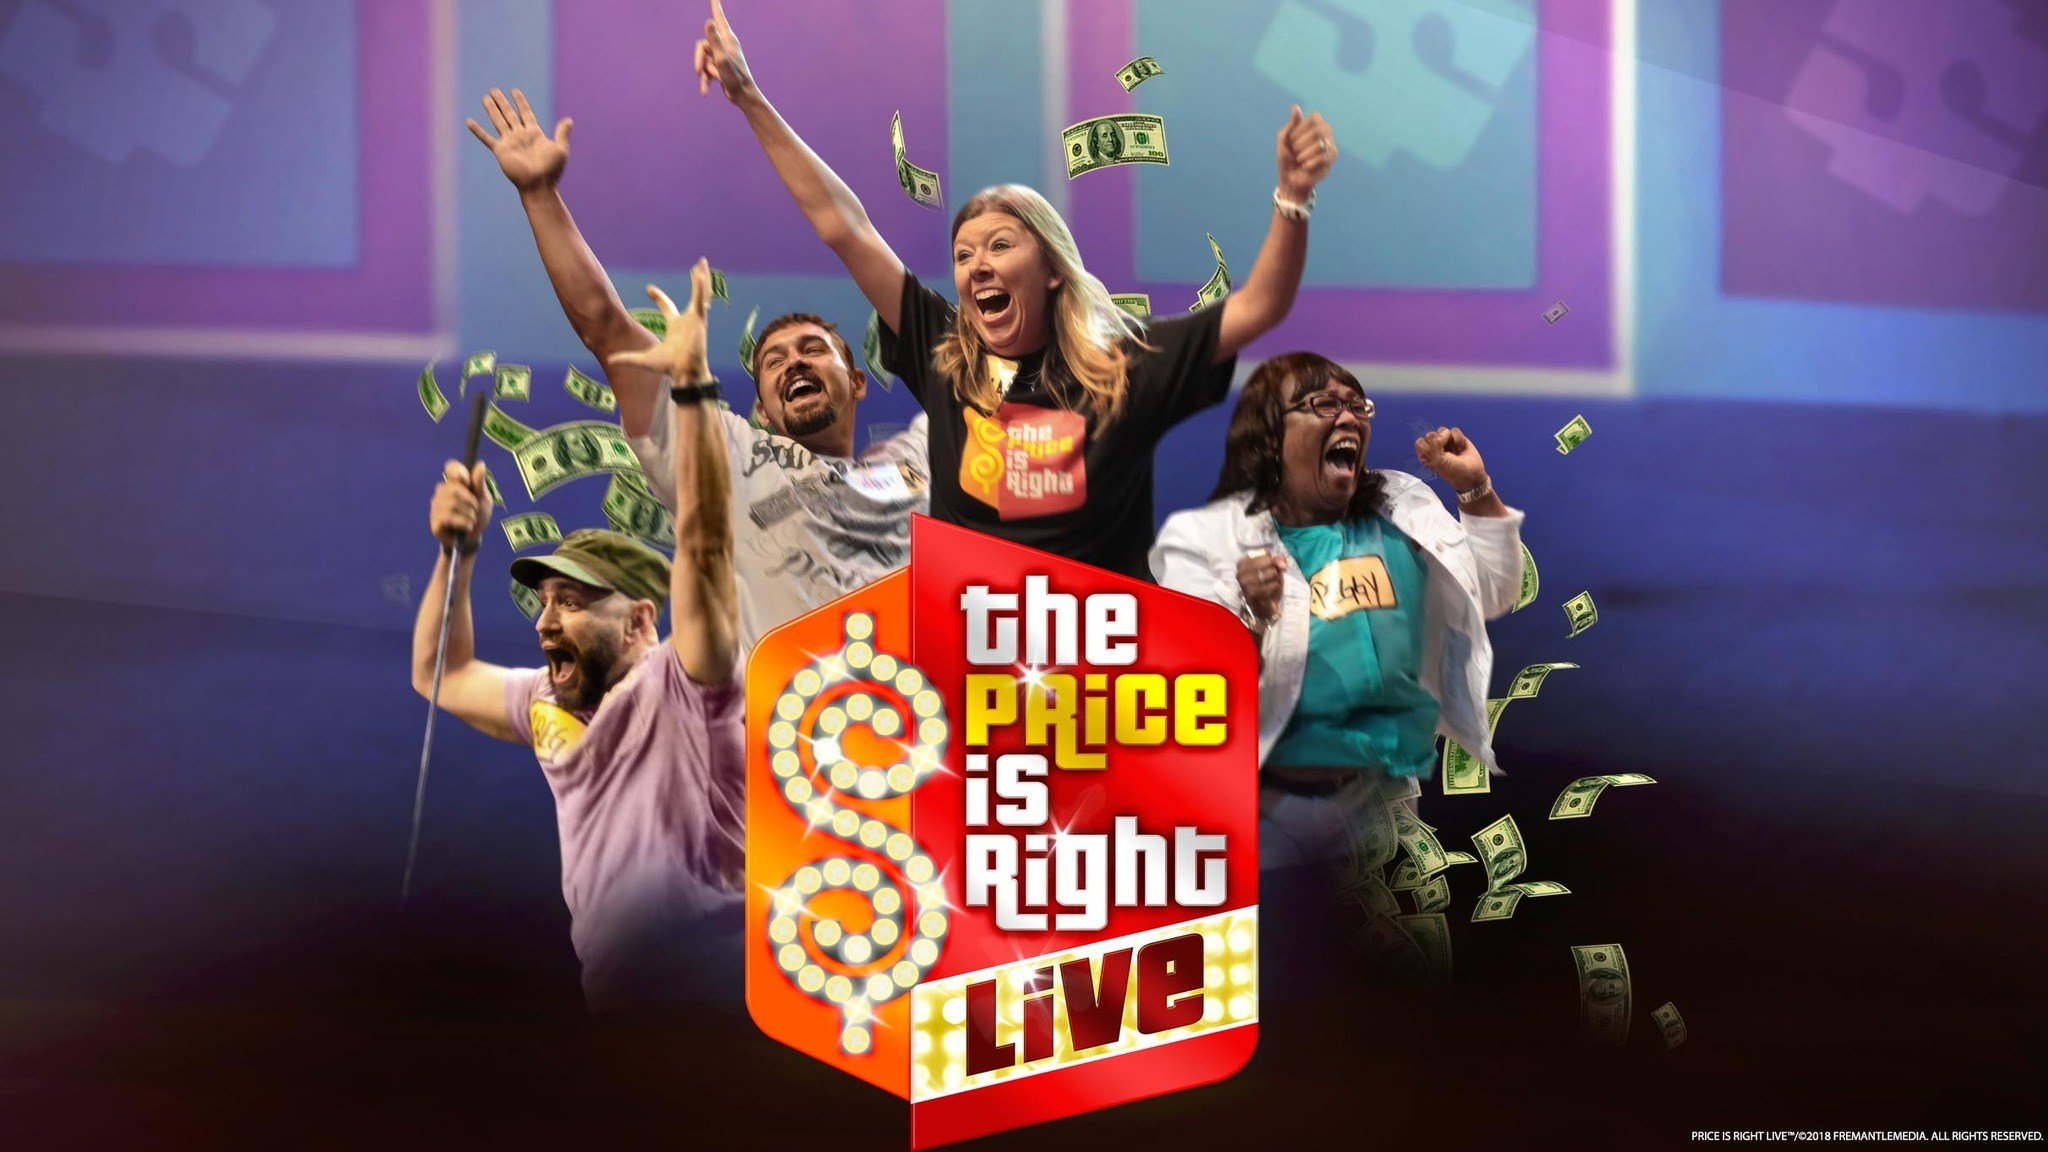 The Price is Right Live comes to Spartanburg (Source: Fremantle Media)